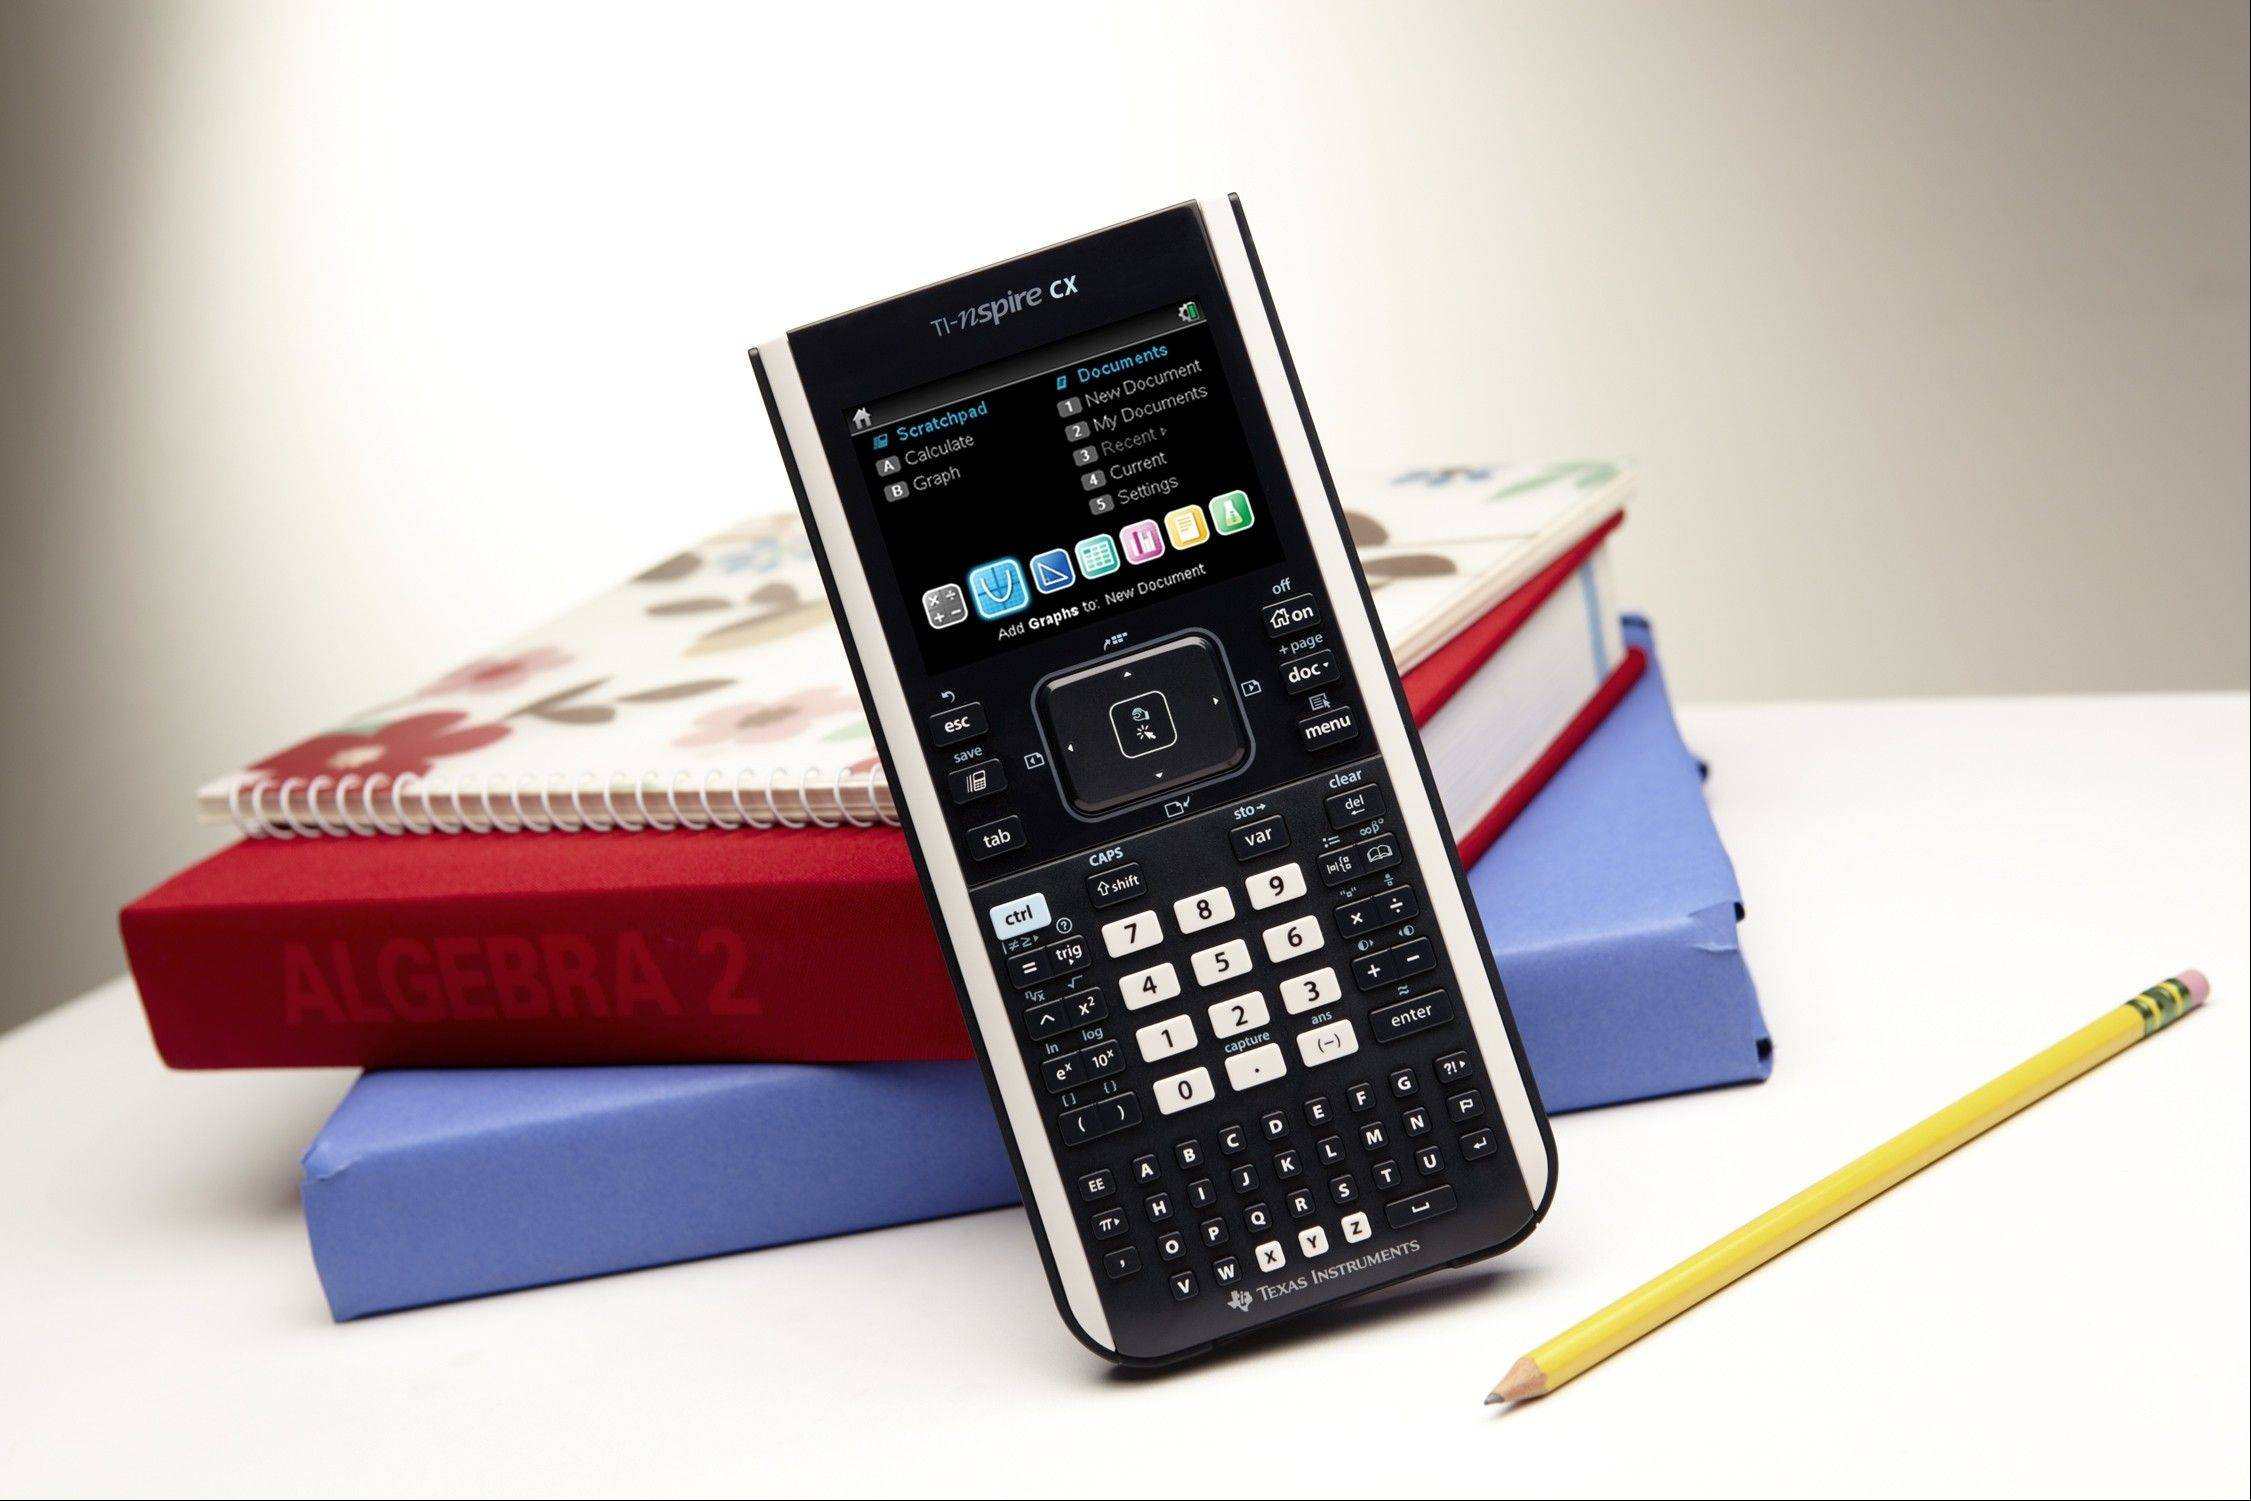 Texas Instruments� most recent calculator, the TI-Nspire CX, offers color and 3-D graphics capability.